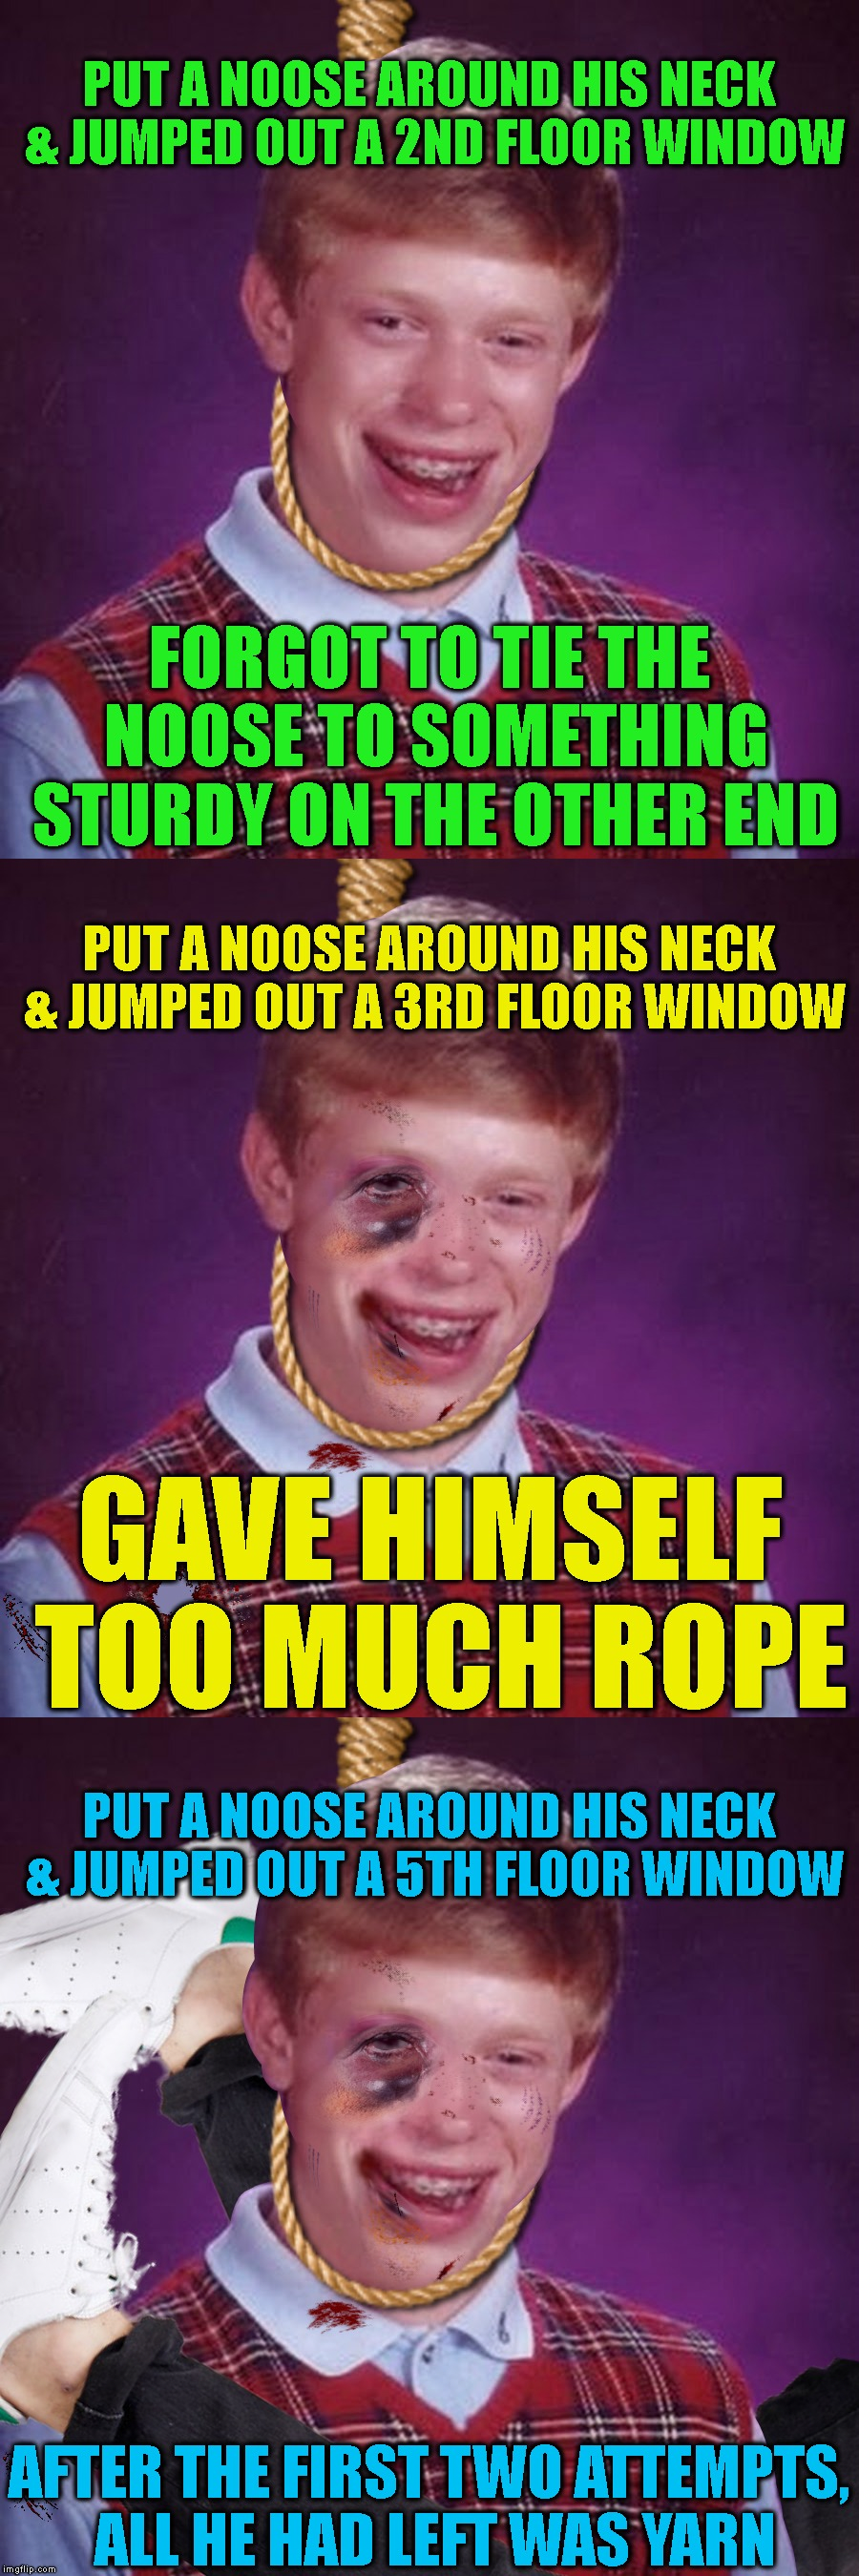 Bad Luck Brian Hits Rock Bottom | PUT A NOOSE AROUND HIS NECK & JUMPED OUT A 2ND FLOOR WINDOW AFTER THE FIRST TWO ATTEMPTS, ALL HE HAD LEFT WAS YARN FORGOT TO TIE THE NOOSE T | image tagged in blb,bad luck brian,depression,suicide,death,klutz | made w/ Imgflip meme maker